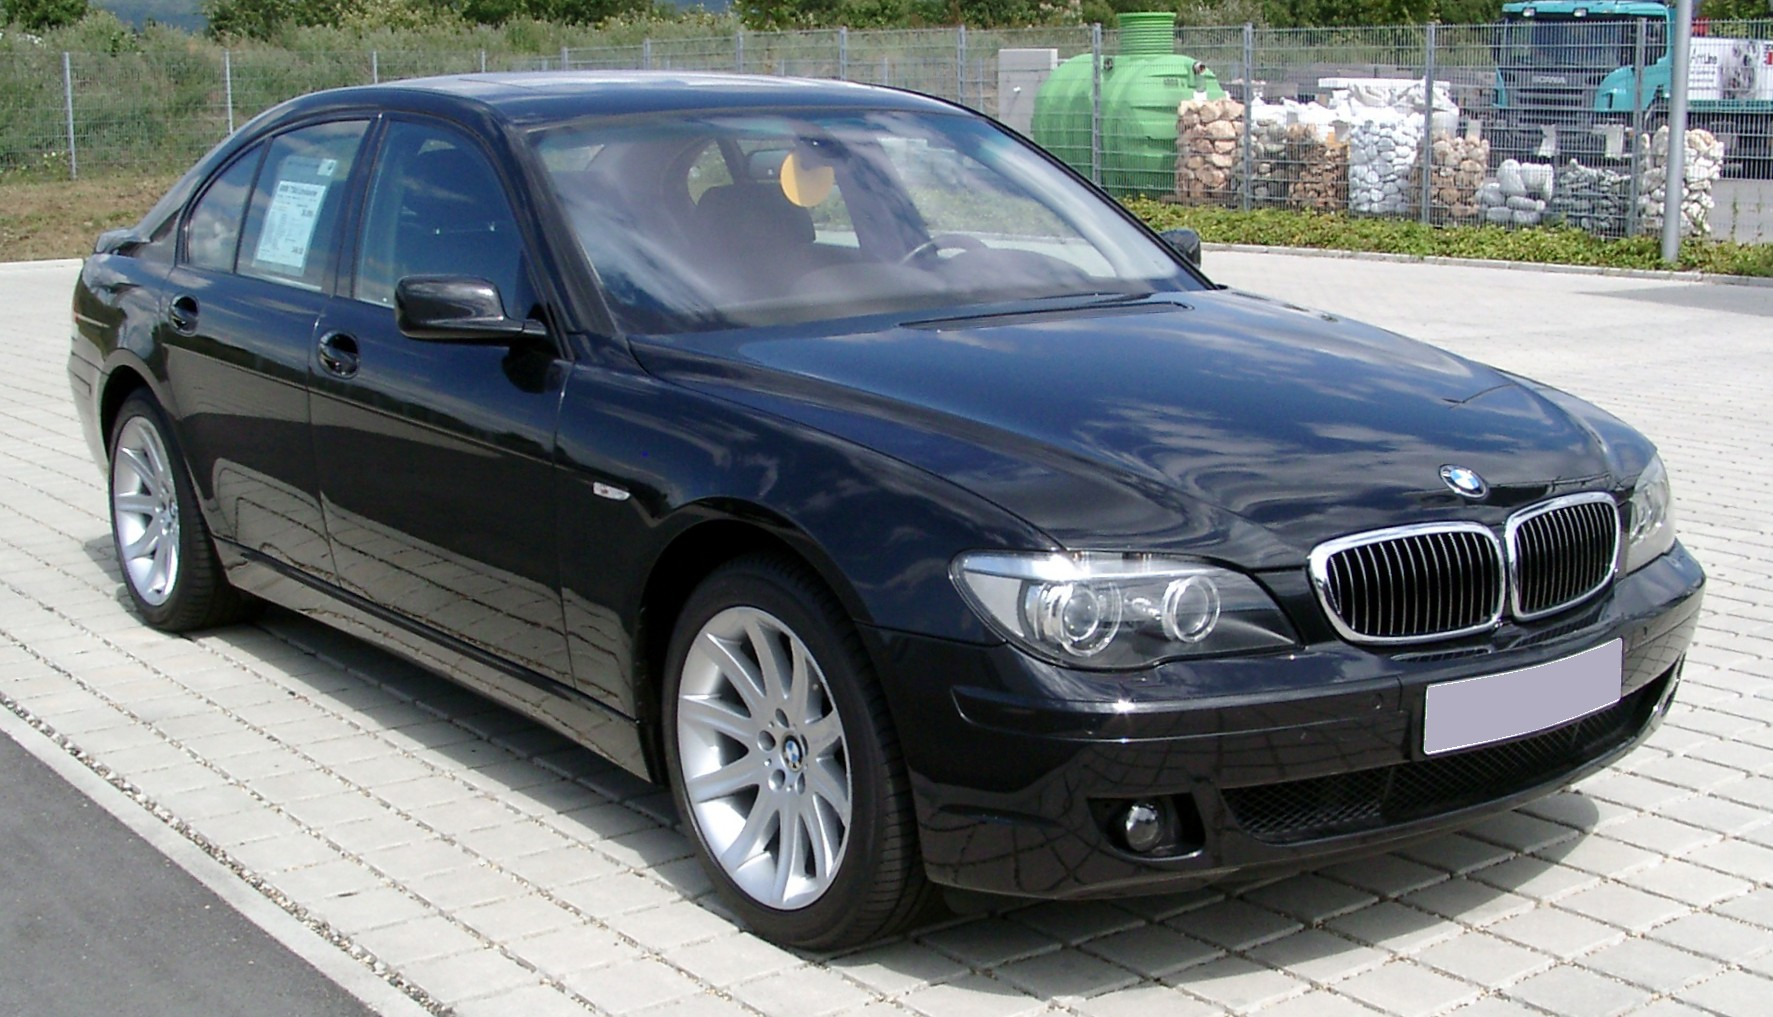 BMW Convertible » 2003 7 Series Bmw - BMW Car Pictures, All Types ...